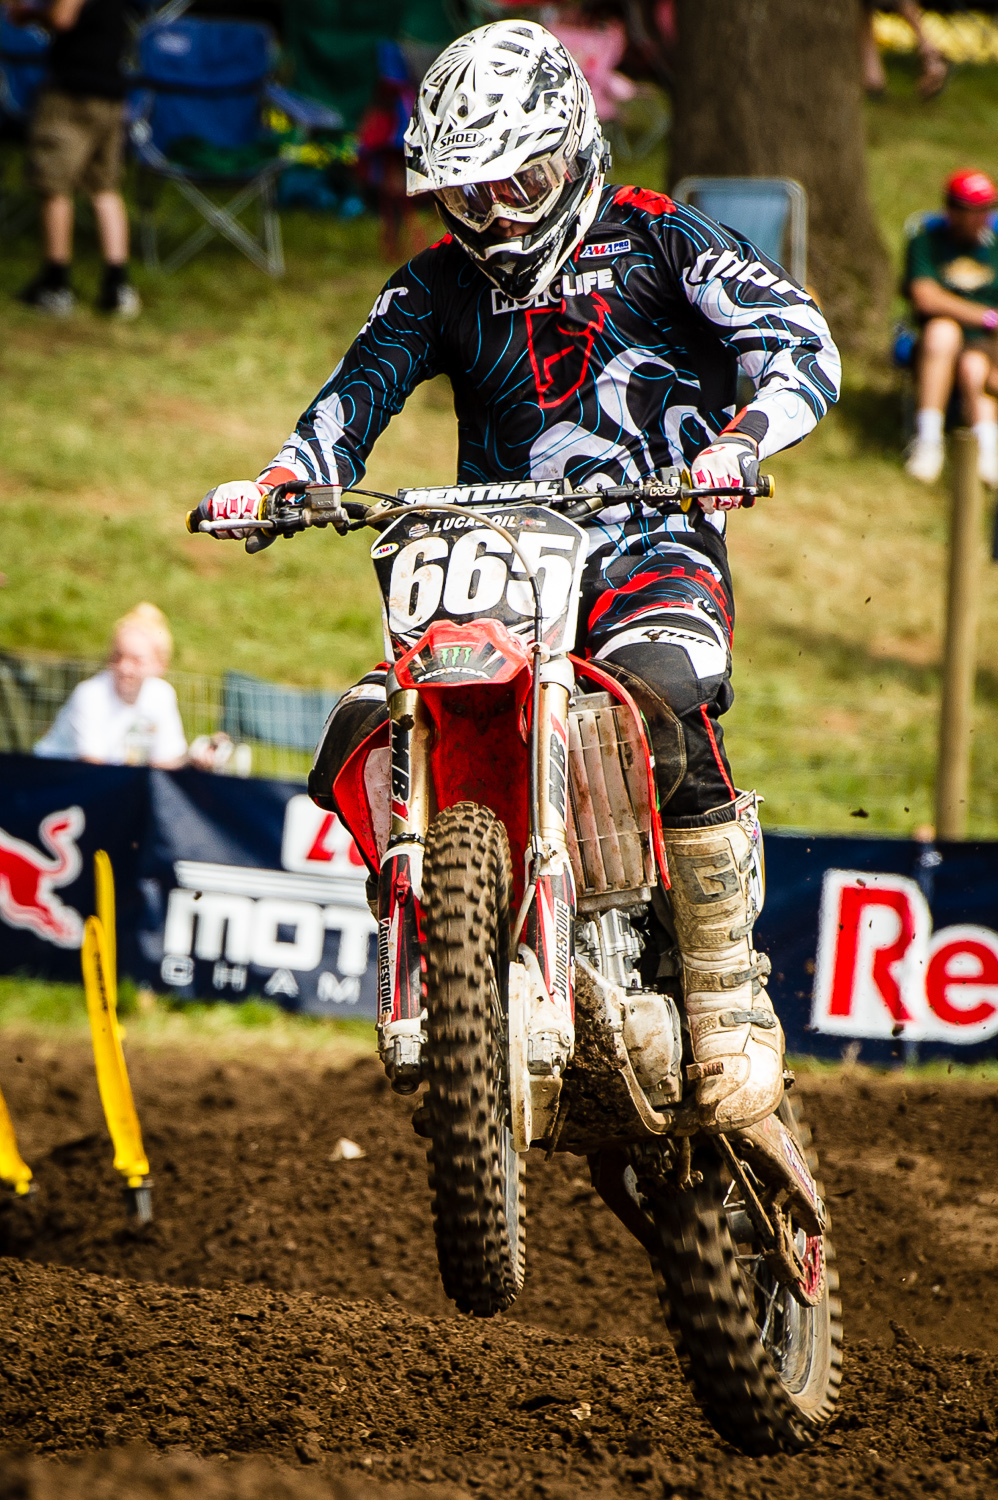 motocross (2 of 4).jpg